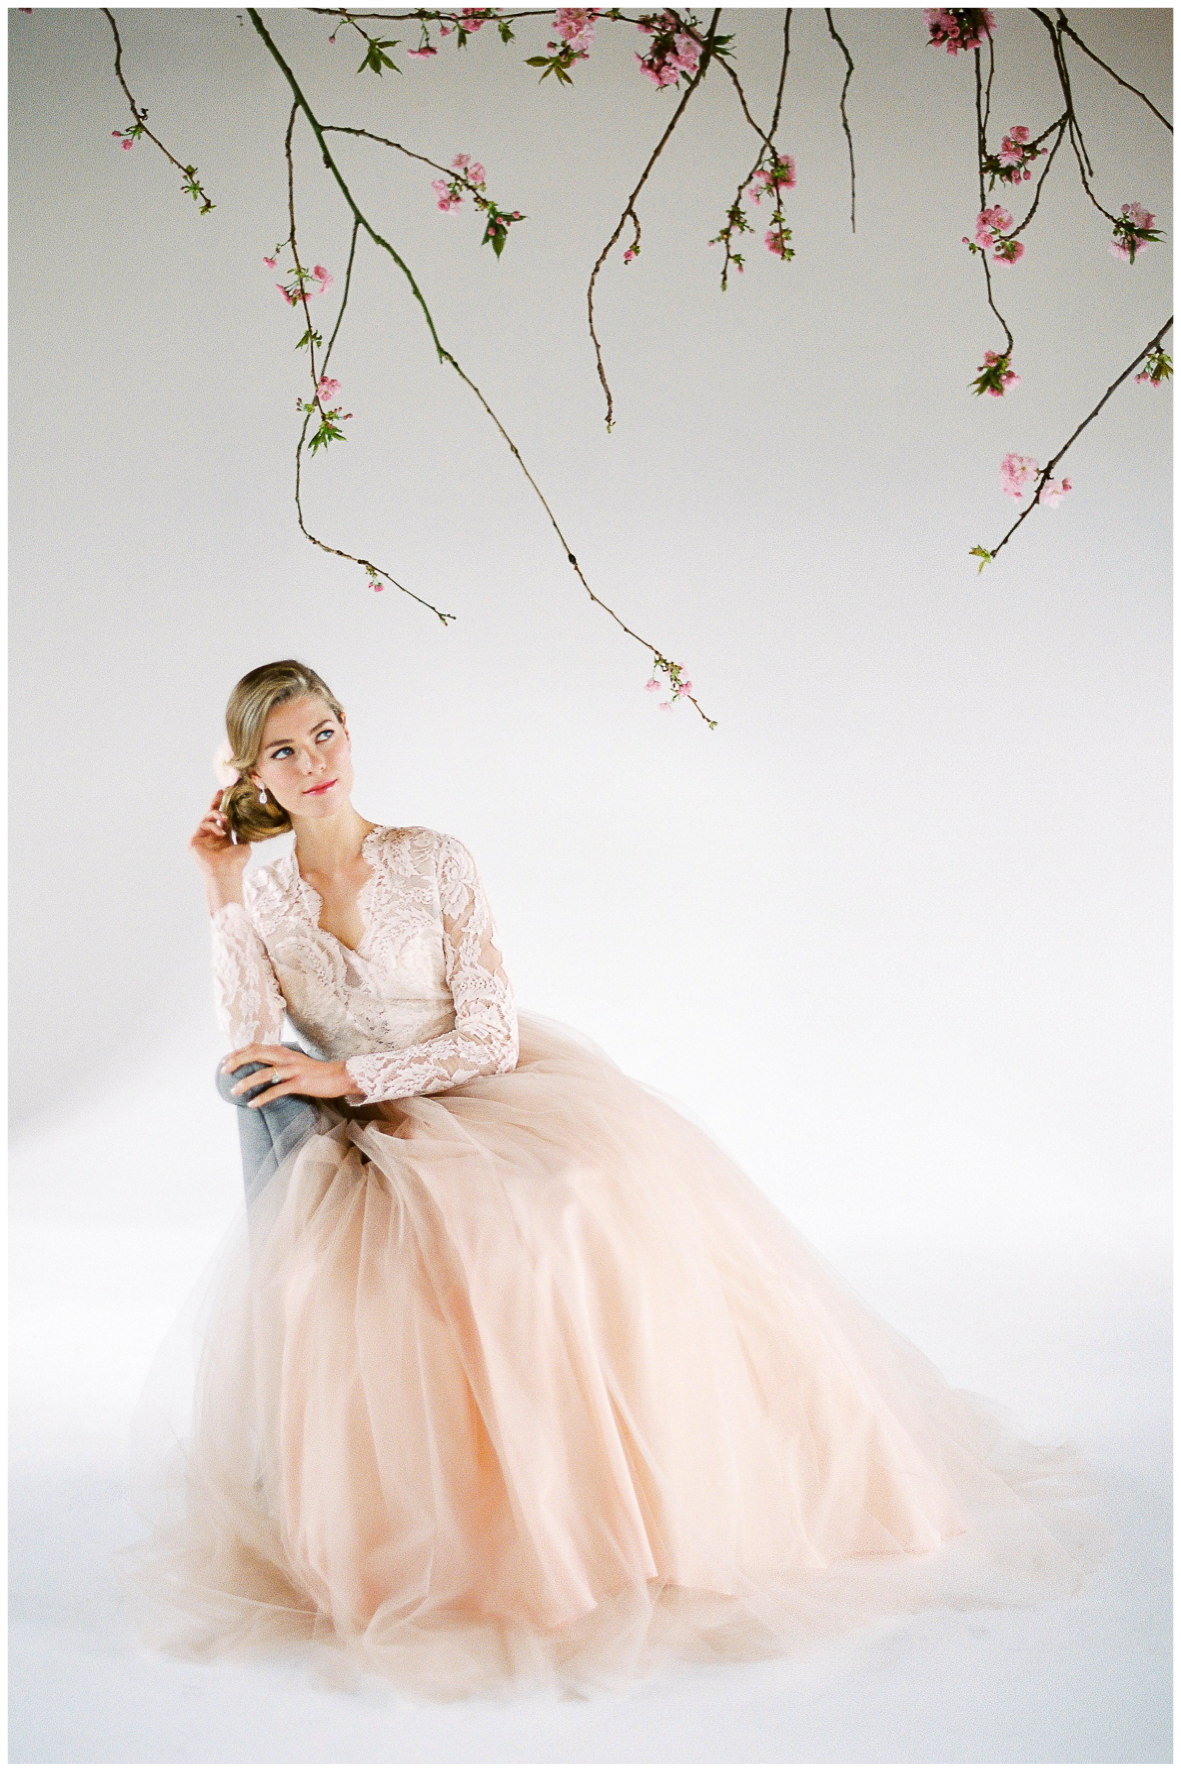 Lucy Davenport Photography, Loft Studios, Rebecca K Events, model, blush pink, suspended florals, soft pink wedding dress, lace, long sleeved wedding dress, Elizabeth Dye